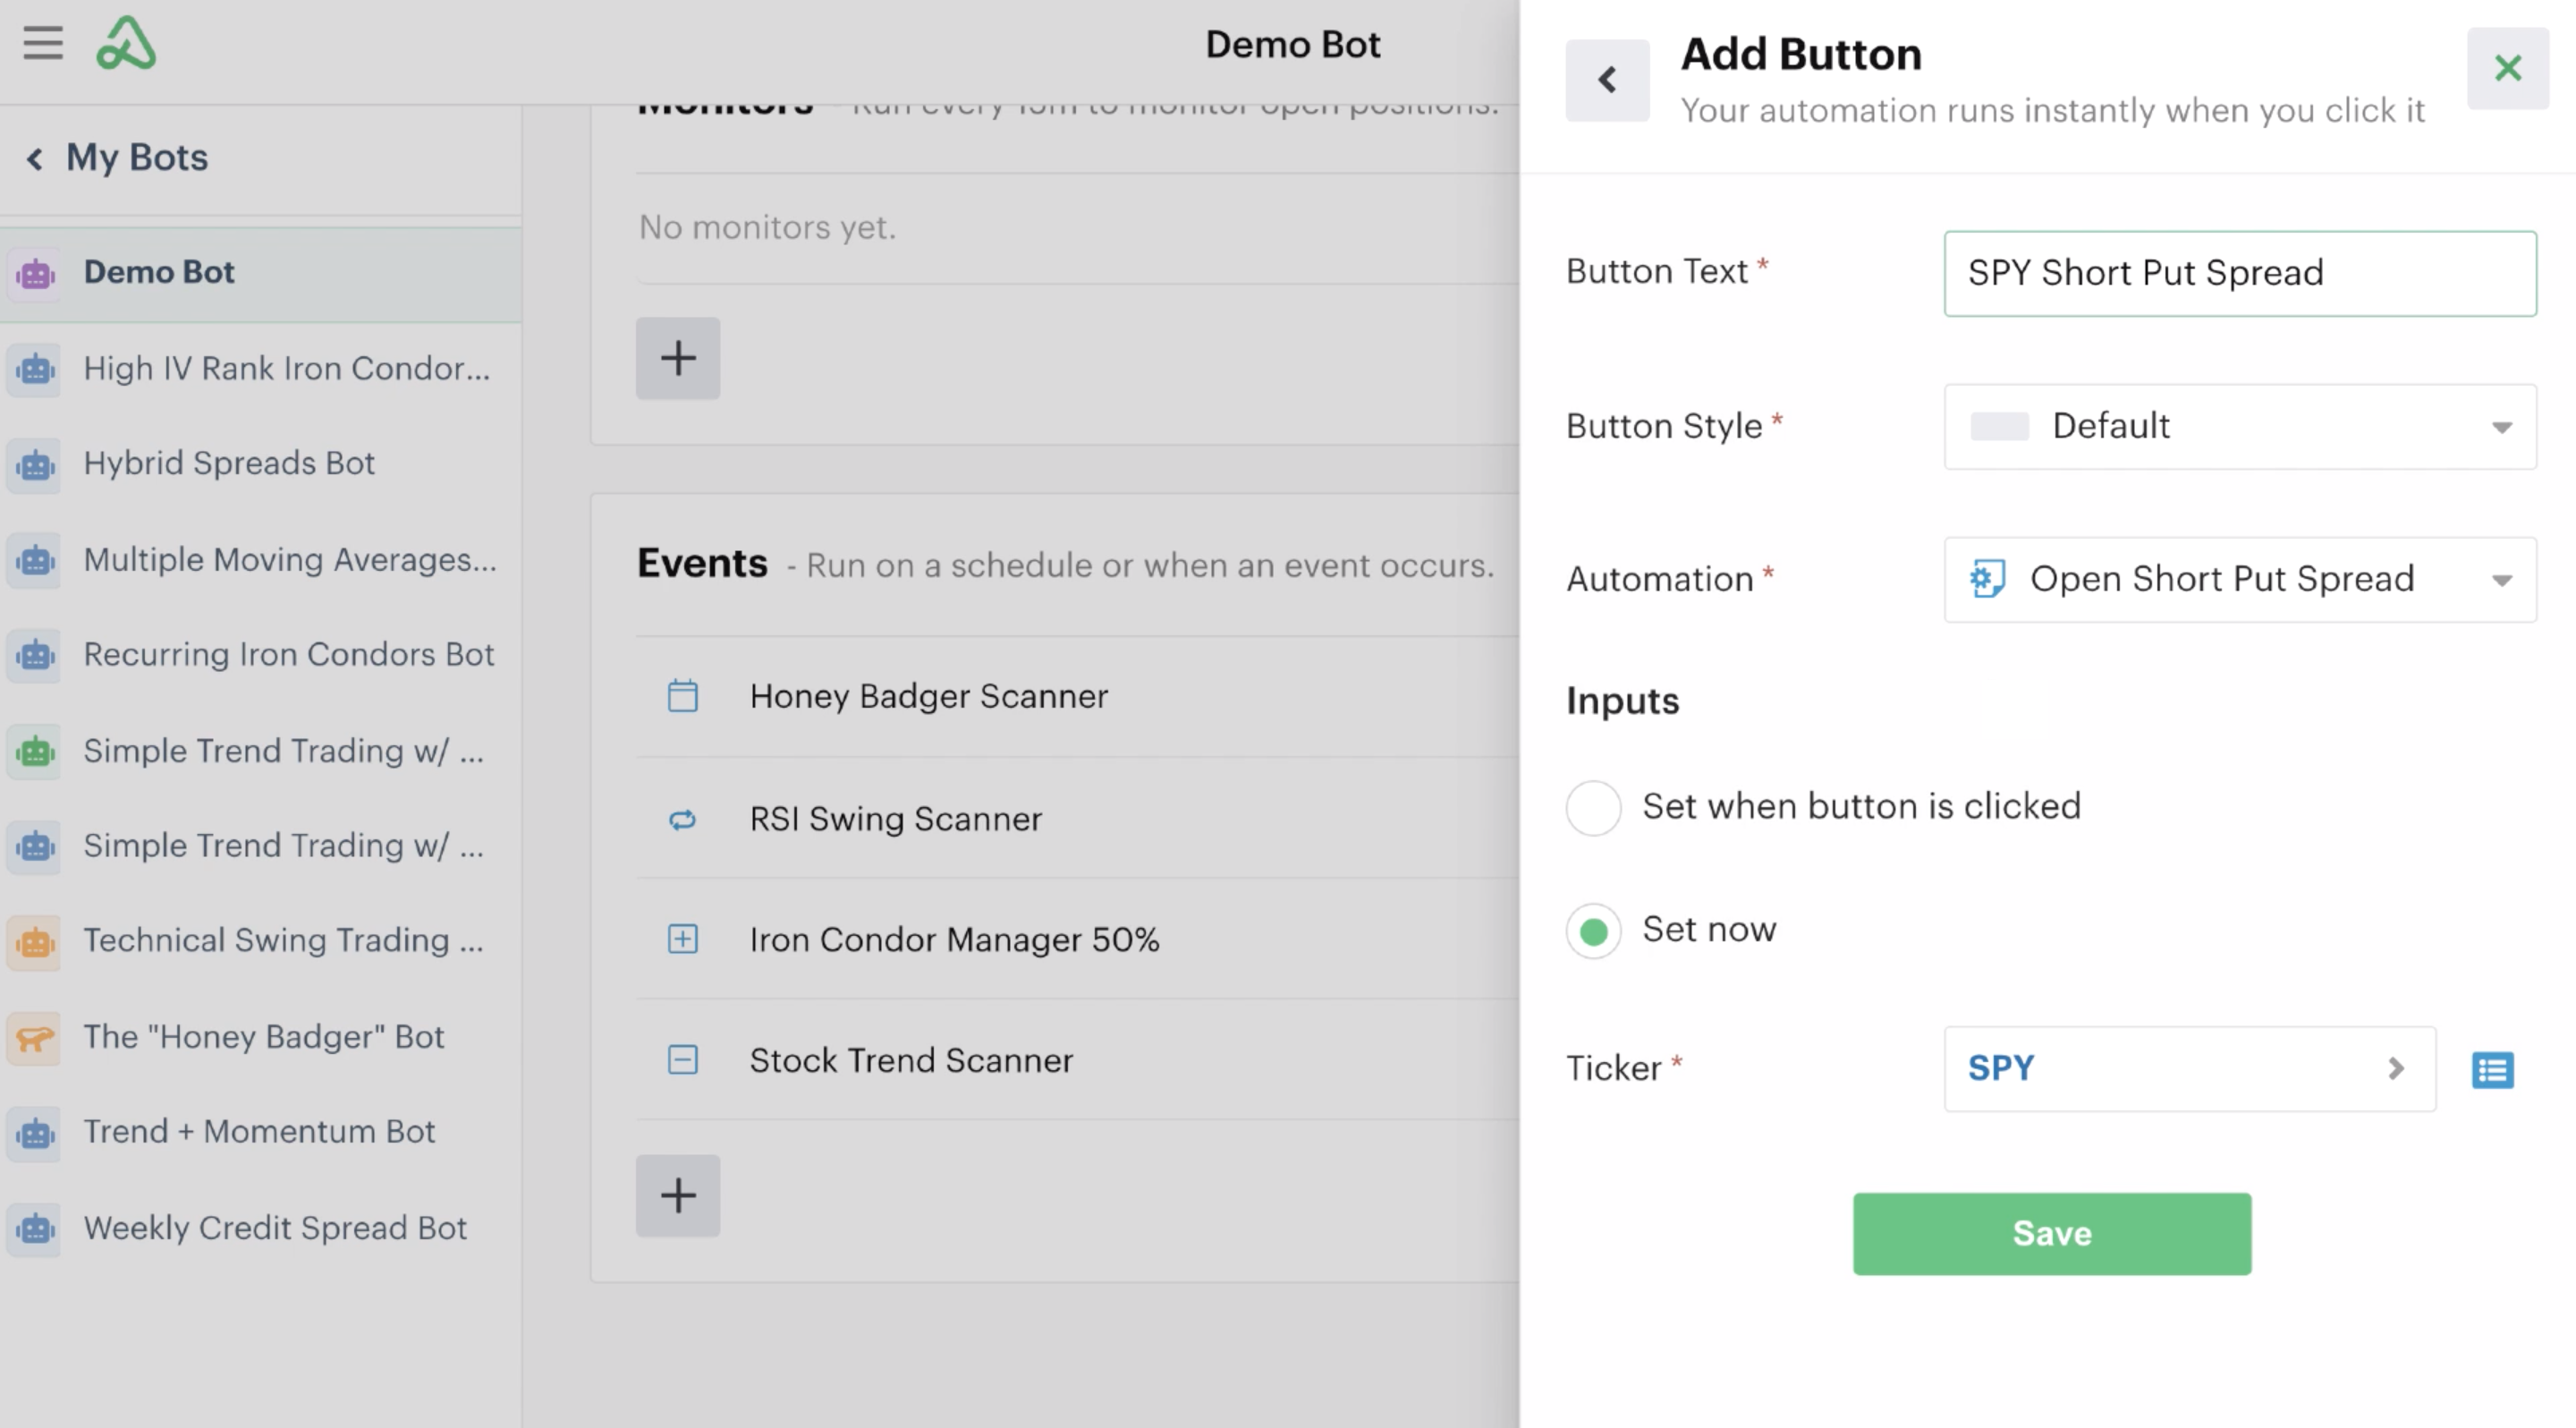 Adding a button click event automation